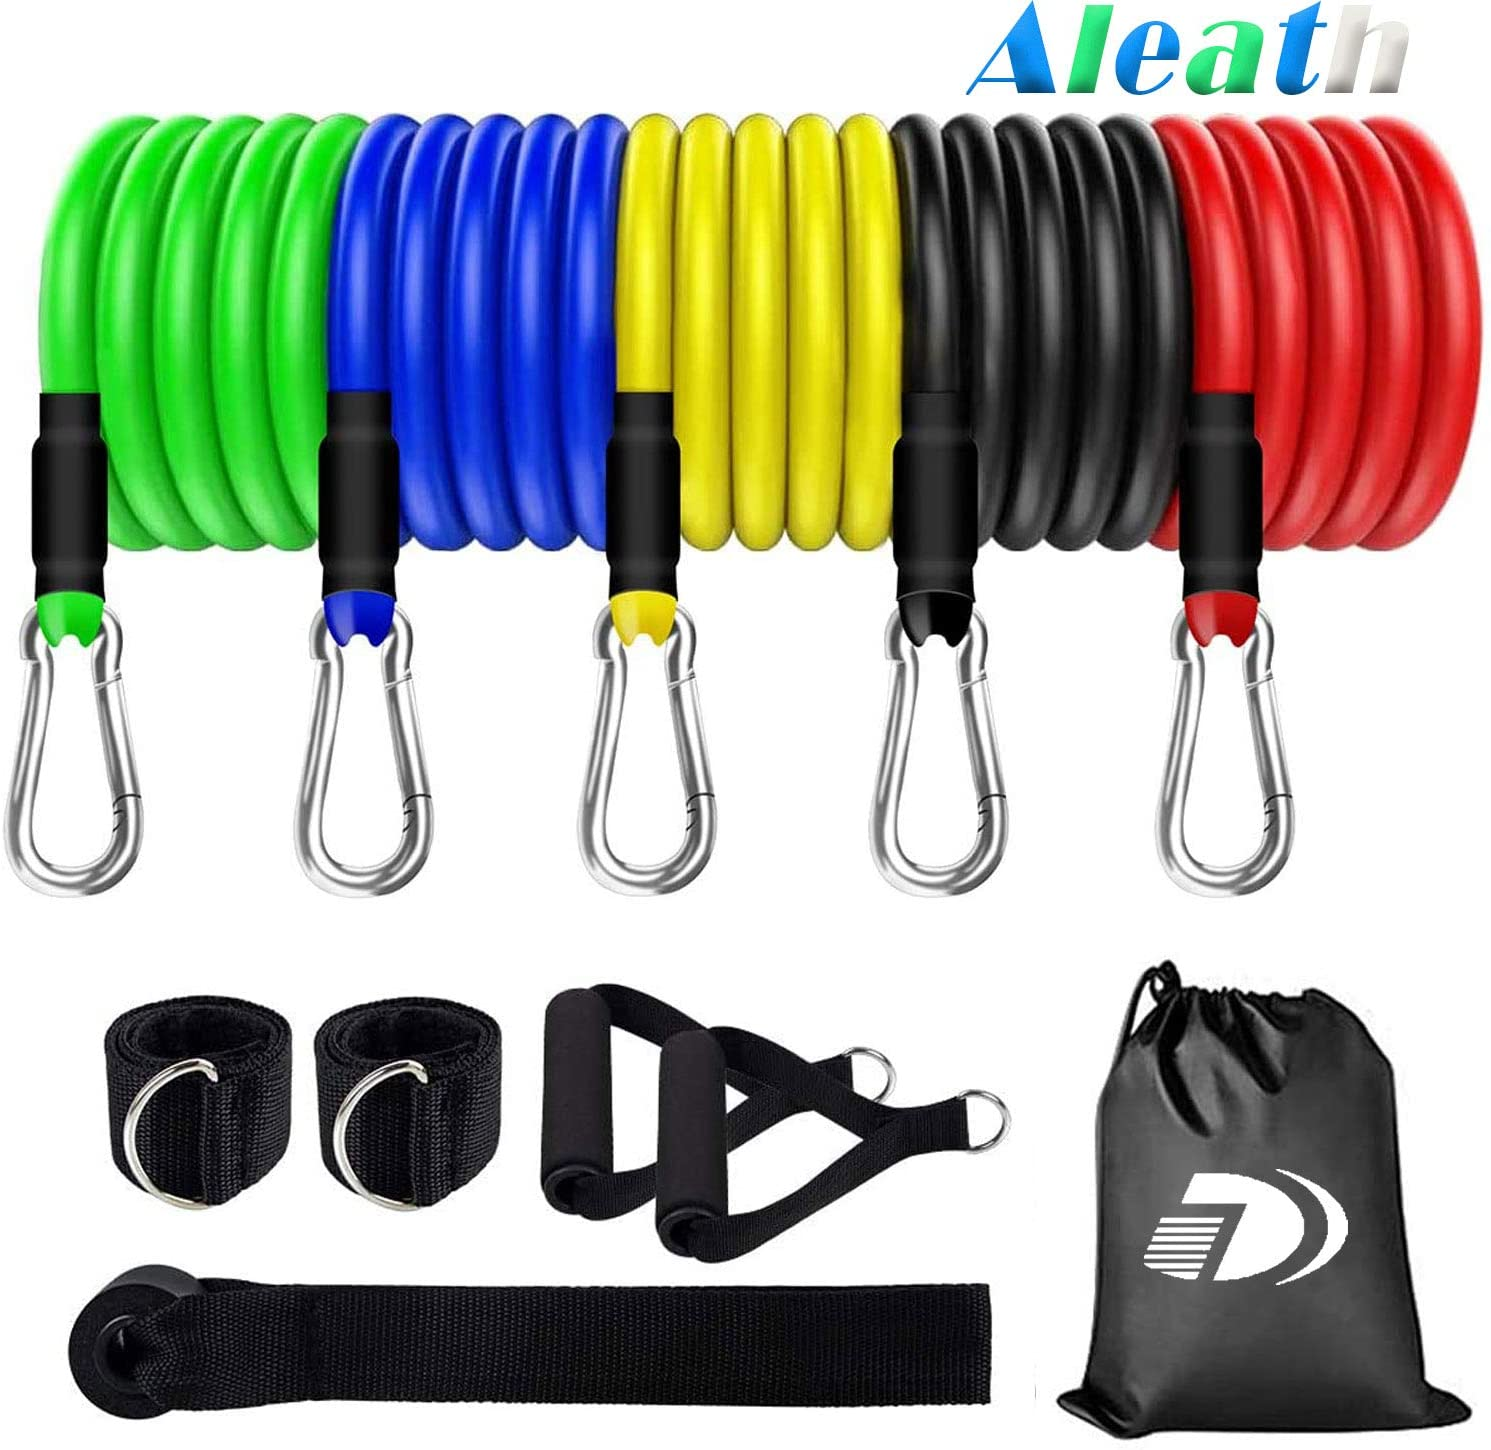 Exercise Bands,Resistance Bands Set, with Door Anchor,Handles, Waterproof Carry Bag, Legs Ankle Straps for Resistance Training, Physical Therapy, Home Workouts